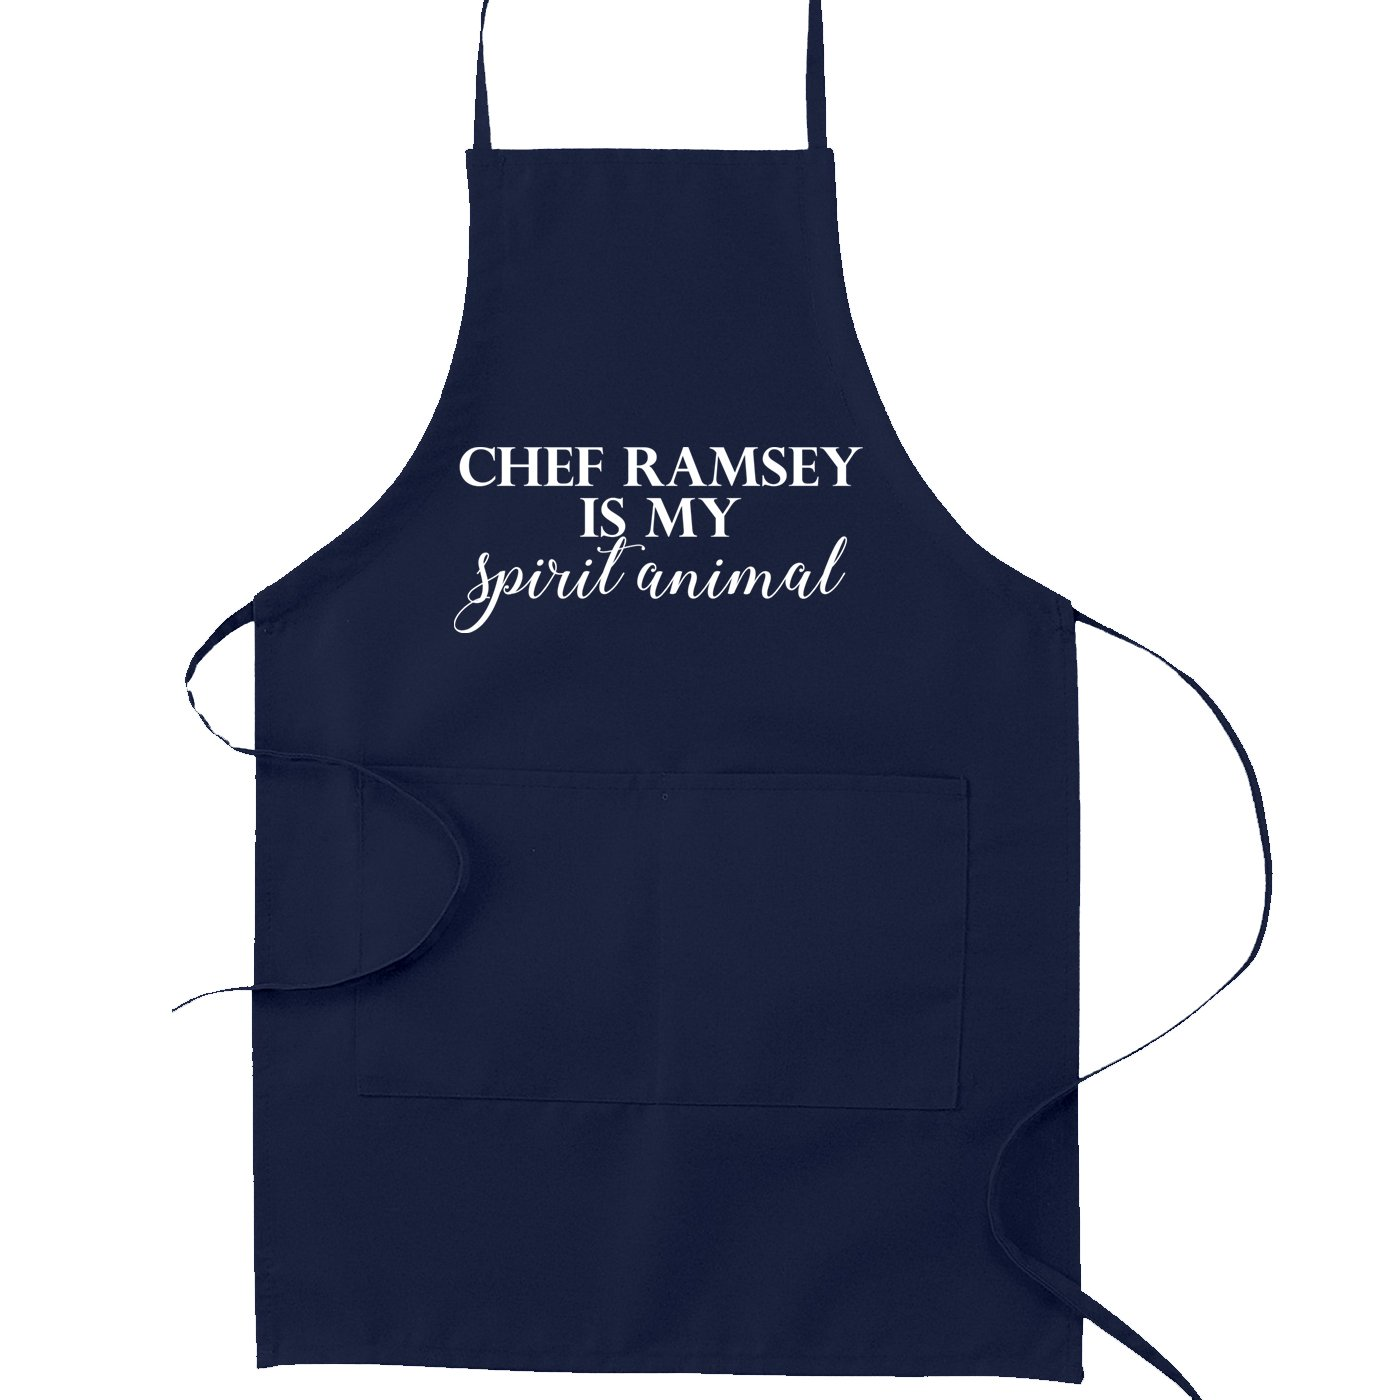 Chef Ramsey is My Spirit Animal Funny Parody Cooking Baking Kitchen Apron - Navy Blue